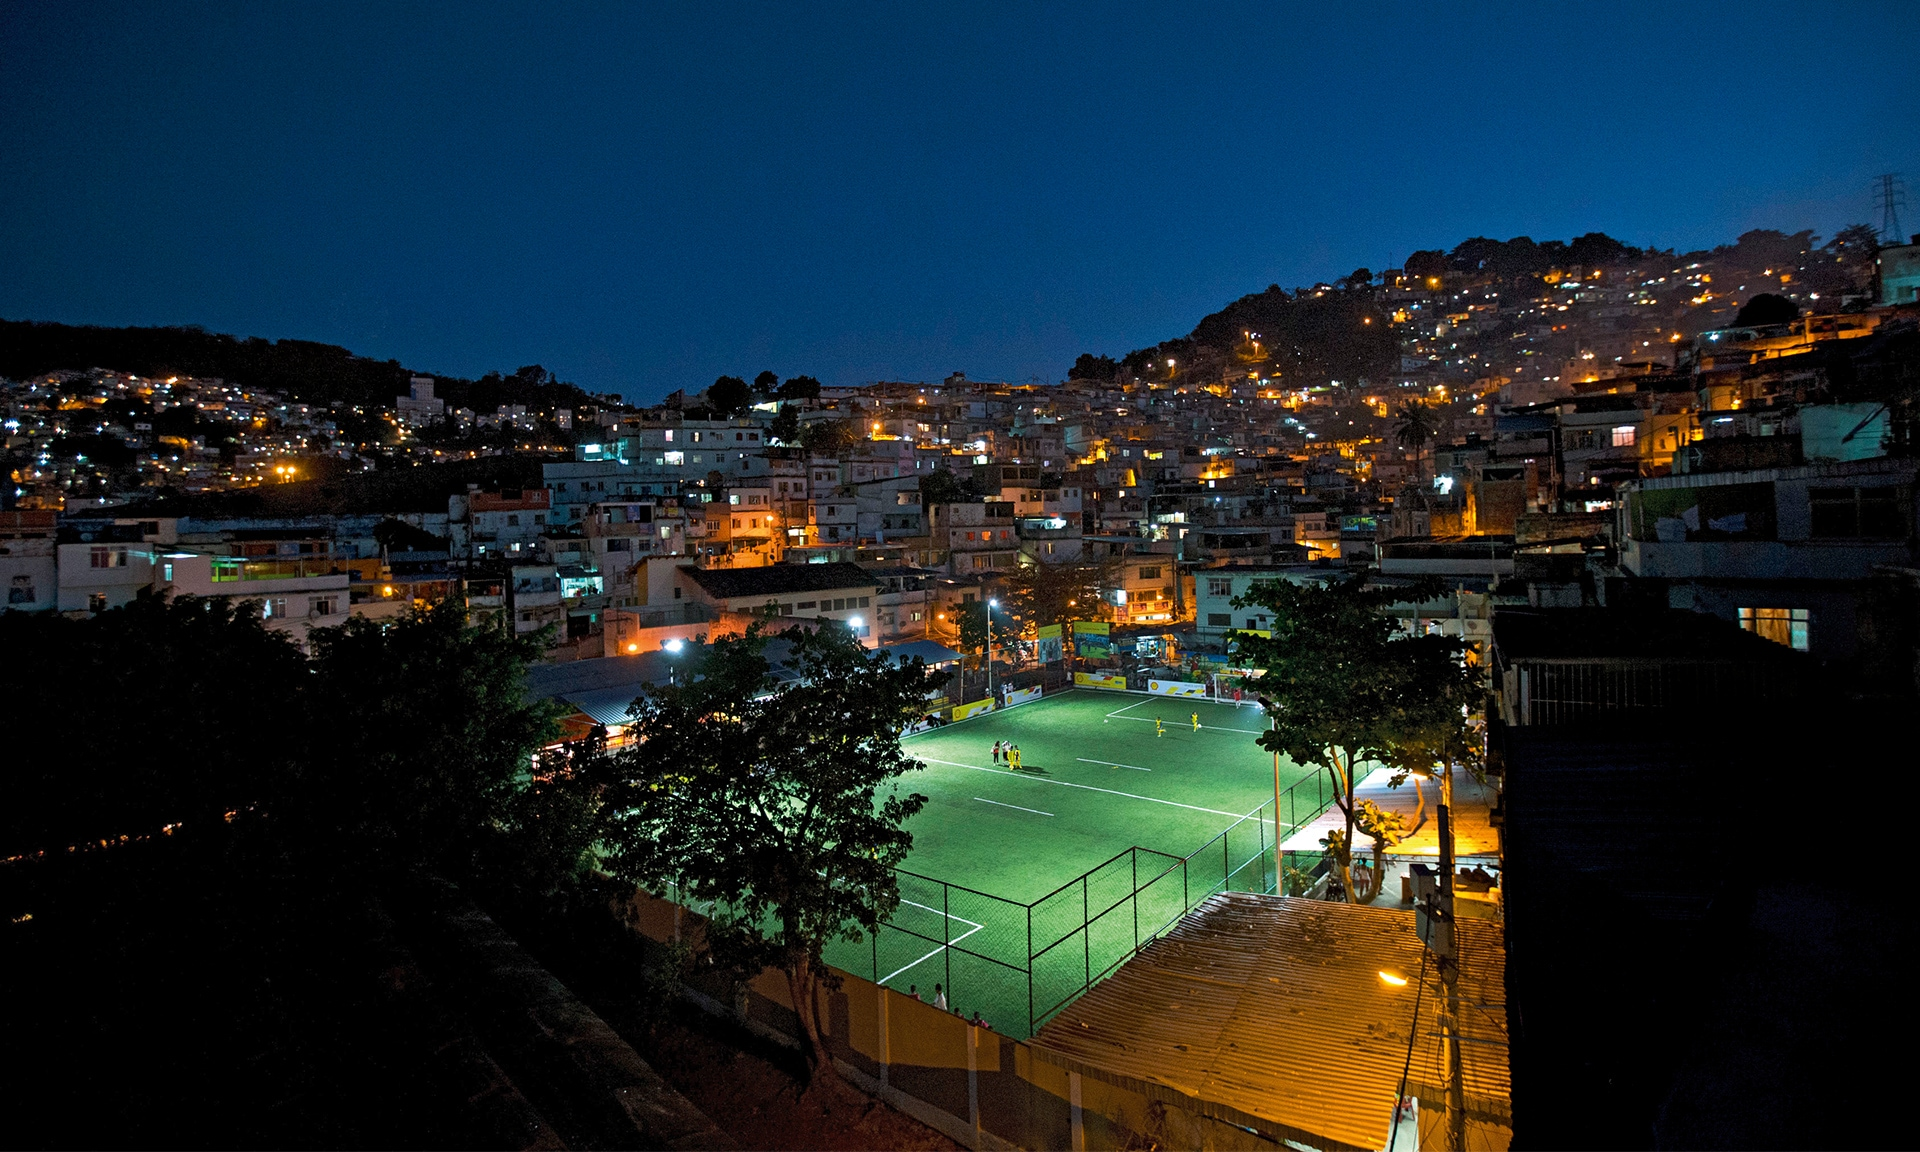 Soccer pitch in the favelas of Rio